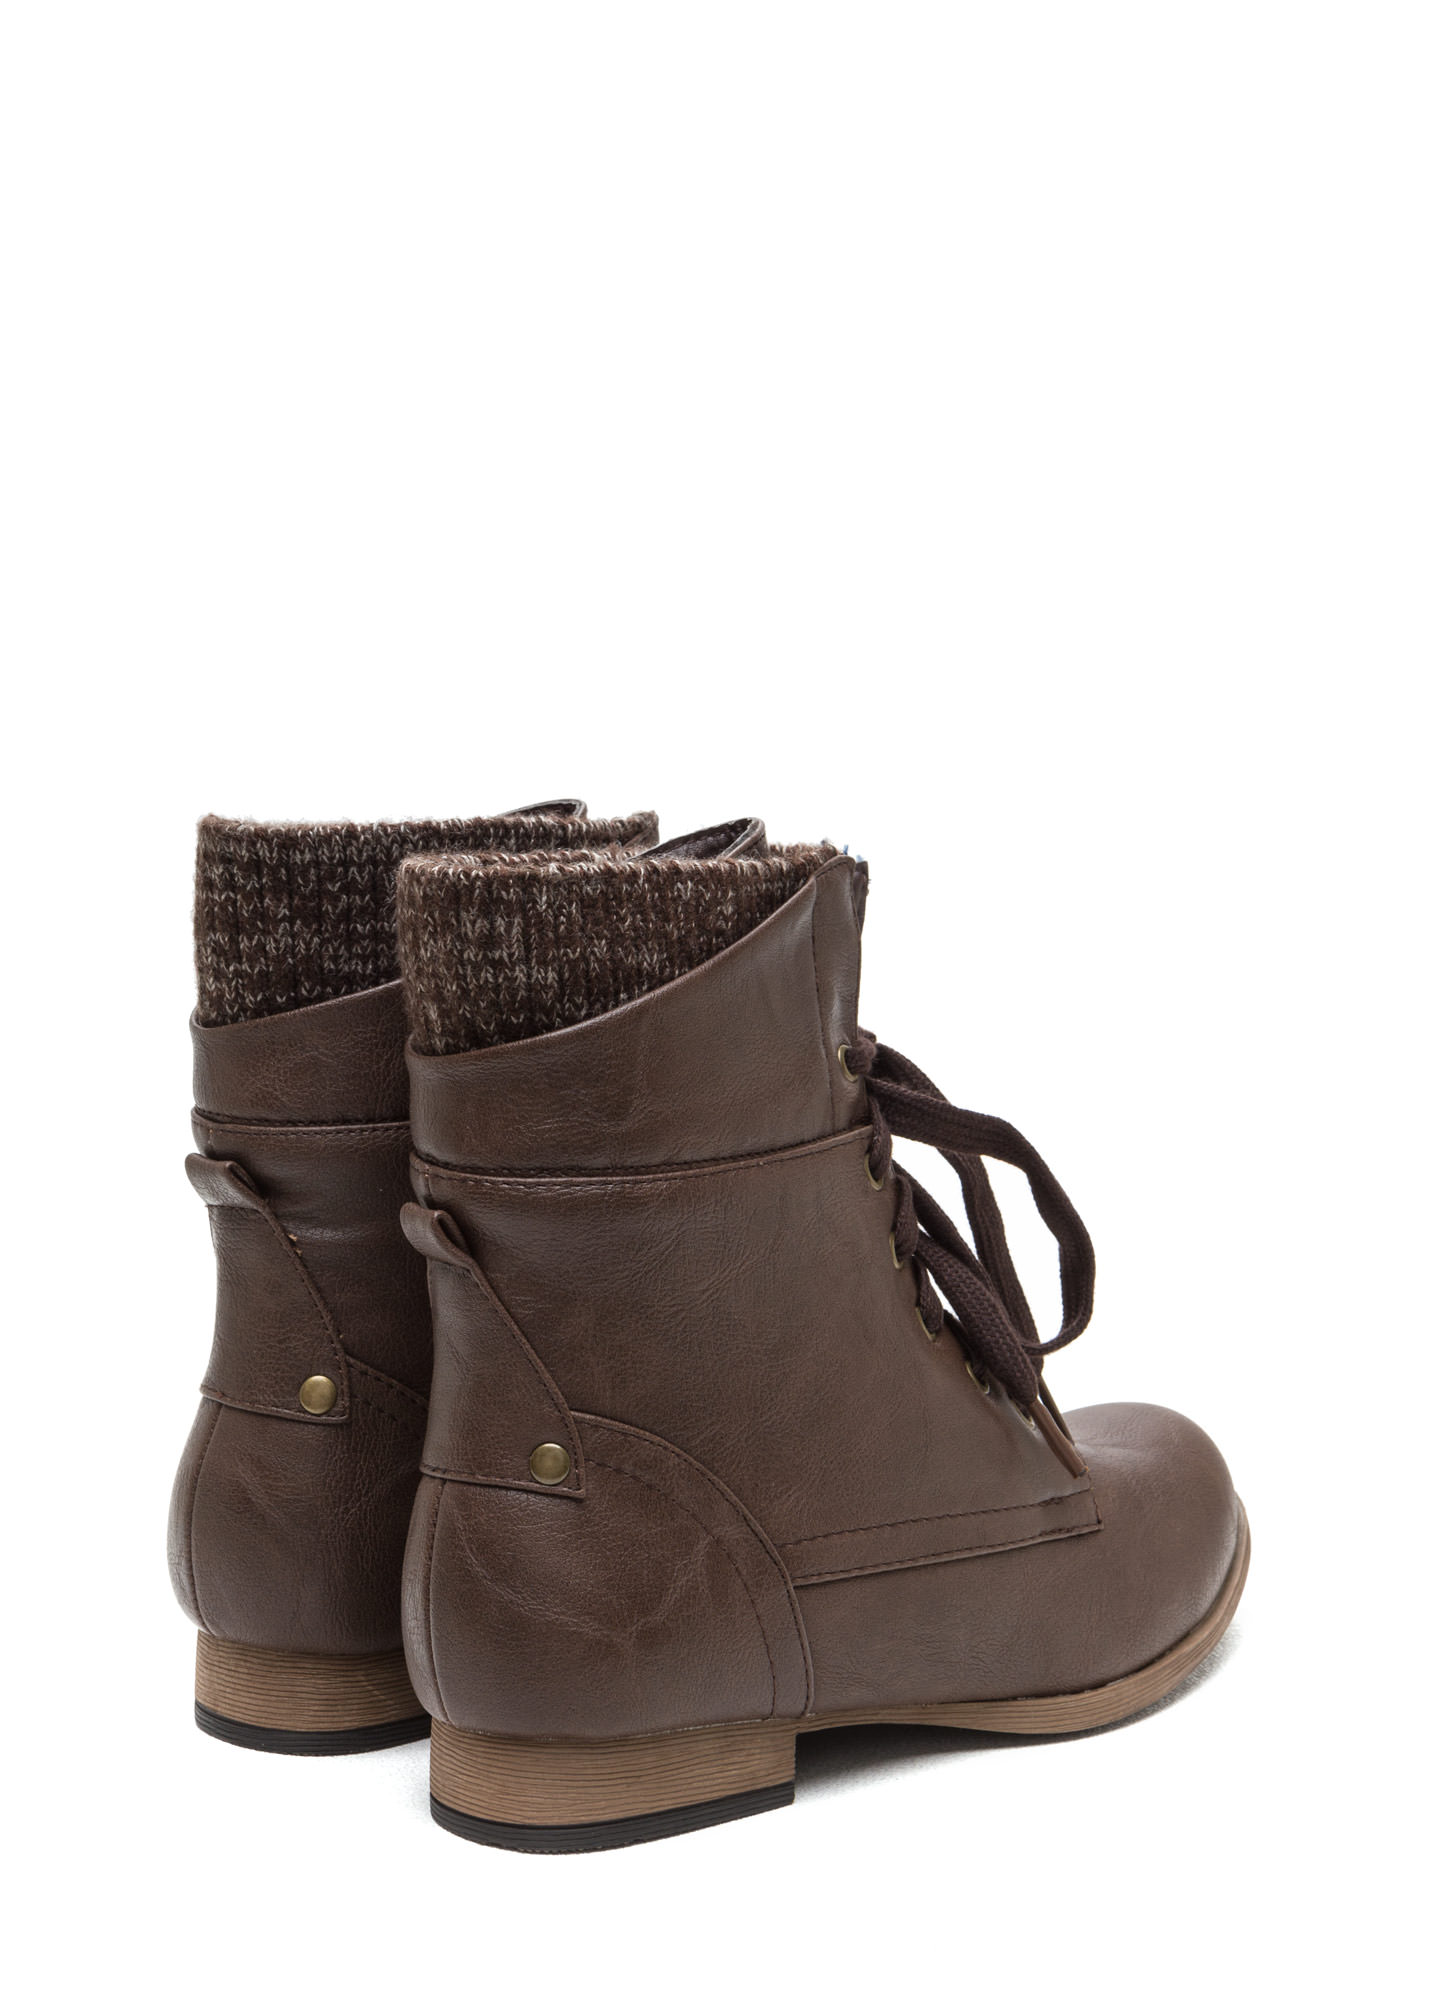 Sweater Weather Cuffed Lace-Up Boots BROWN